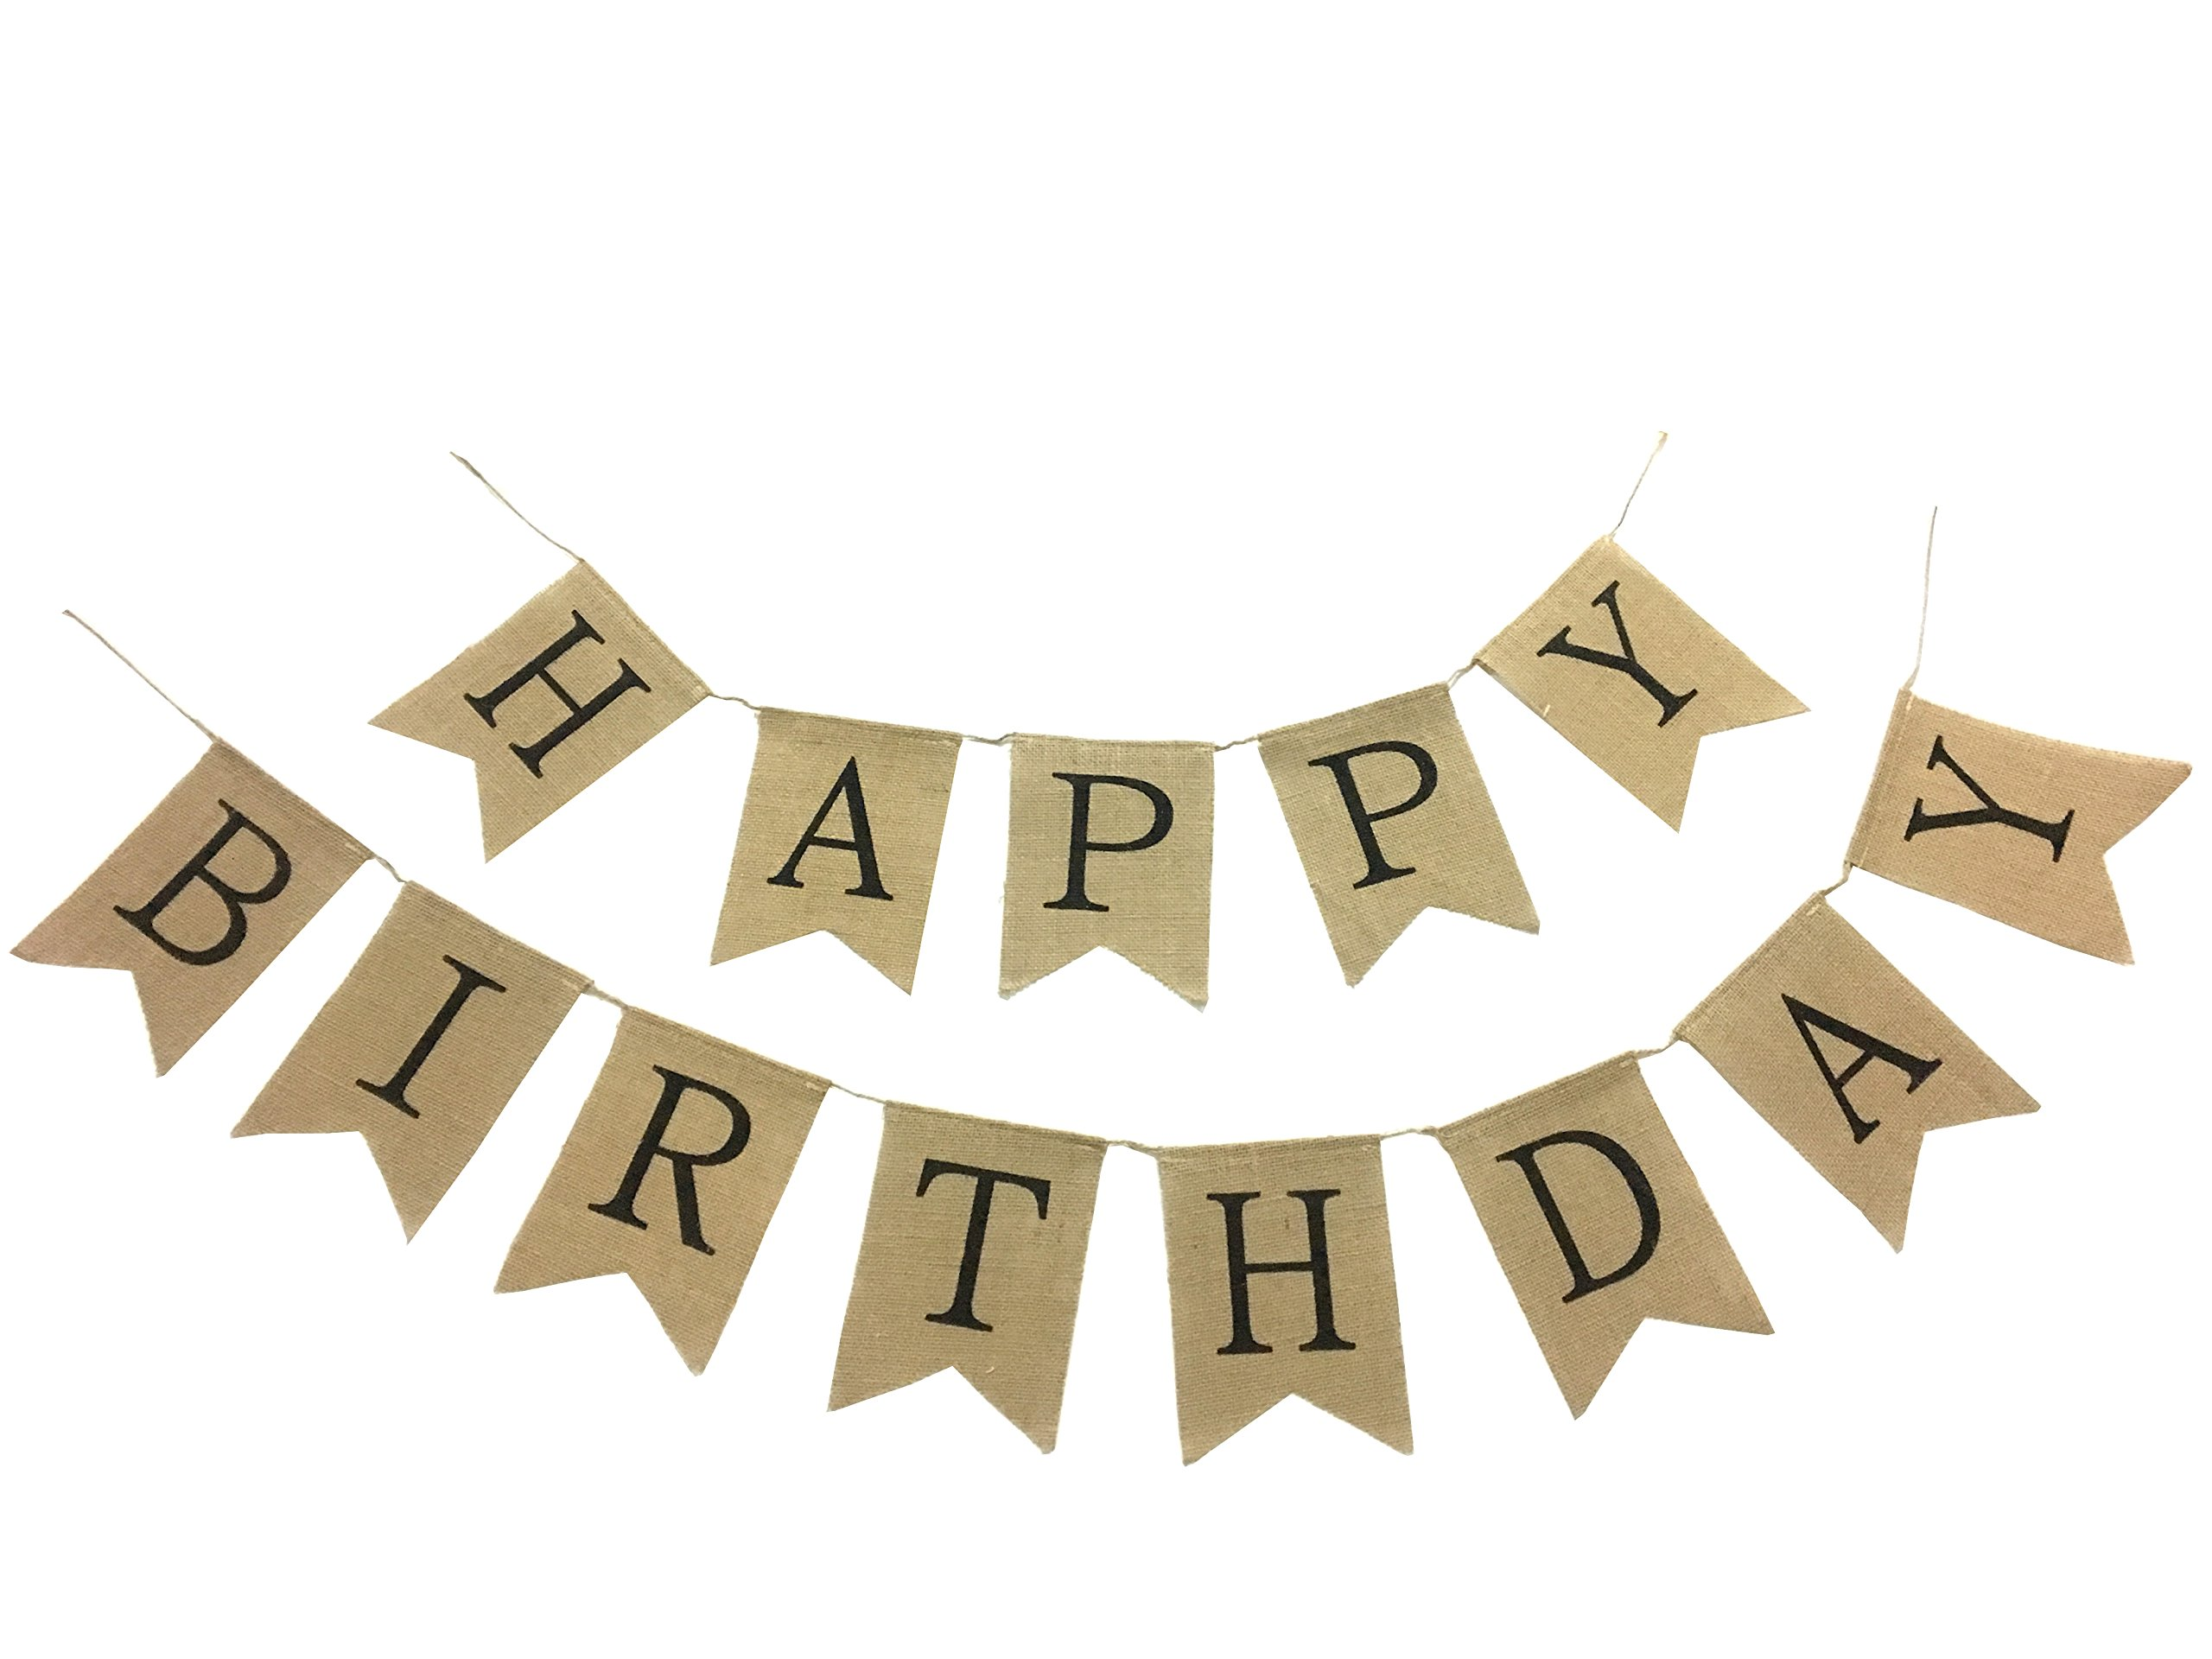 Burlap Happy Birthday Banner Rustic Birthday Party Bunting Banners, Garland Sign For Birthday Party Supplies, Birthday Decorations.